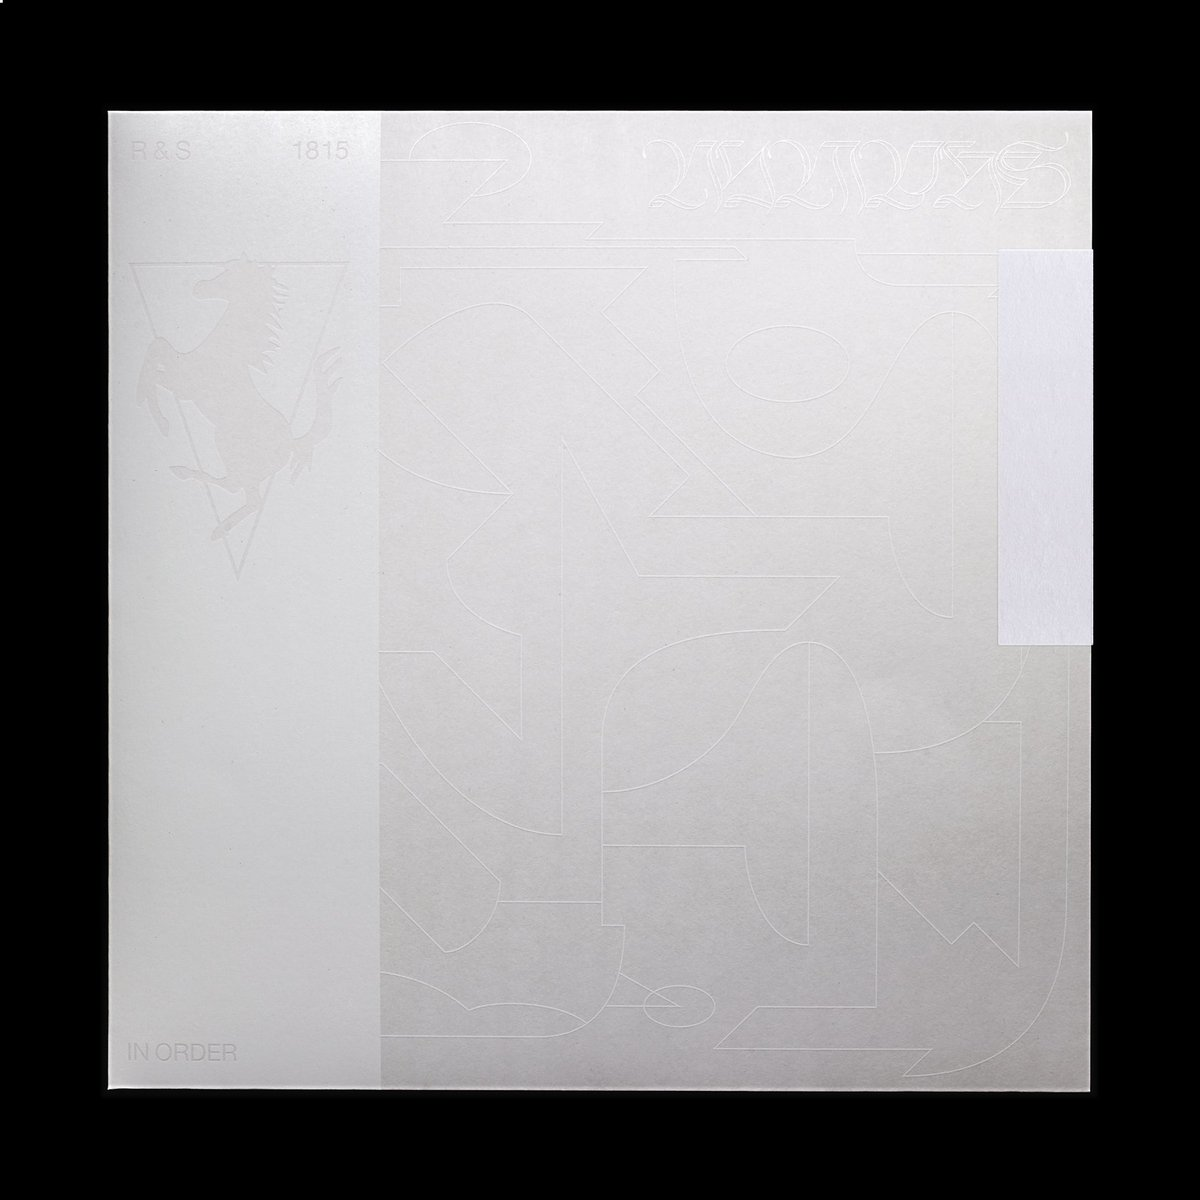 New Work: RS1815 Nicolas Jaar - Nymphs treble LP, 3x paper outer sleeve w/ white screenprint. Tracklist sticker covers opening, to be cut by listener